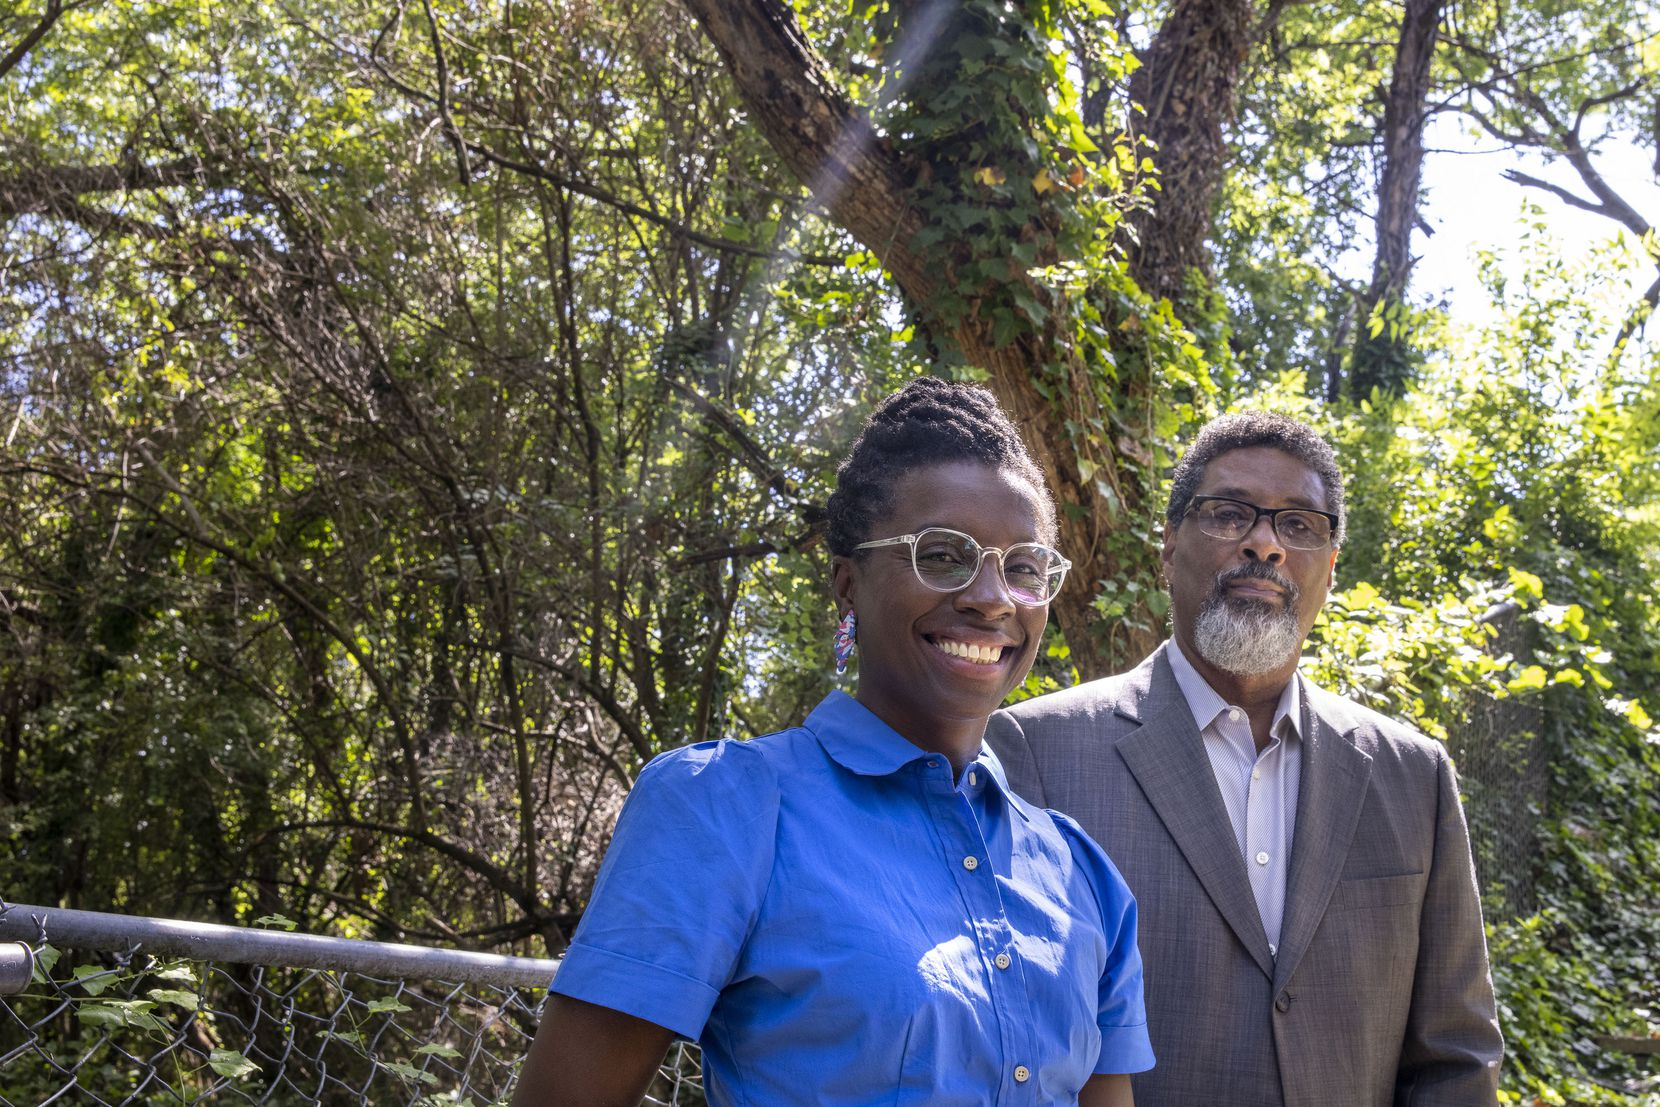 Oak Cliff residents April Allen, president of the Southern Gateway Public Green Foundation,  and foundation board member Lester Houston, who is also president of the Zoo Creek Park Neighborhood Association, at Lester's home.